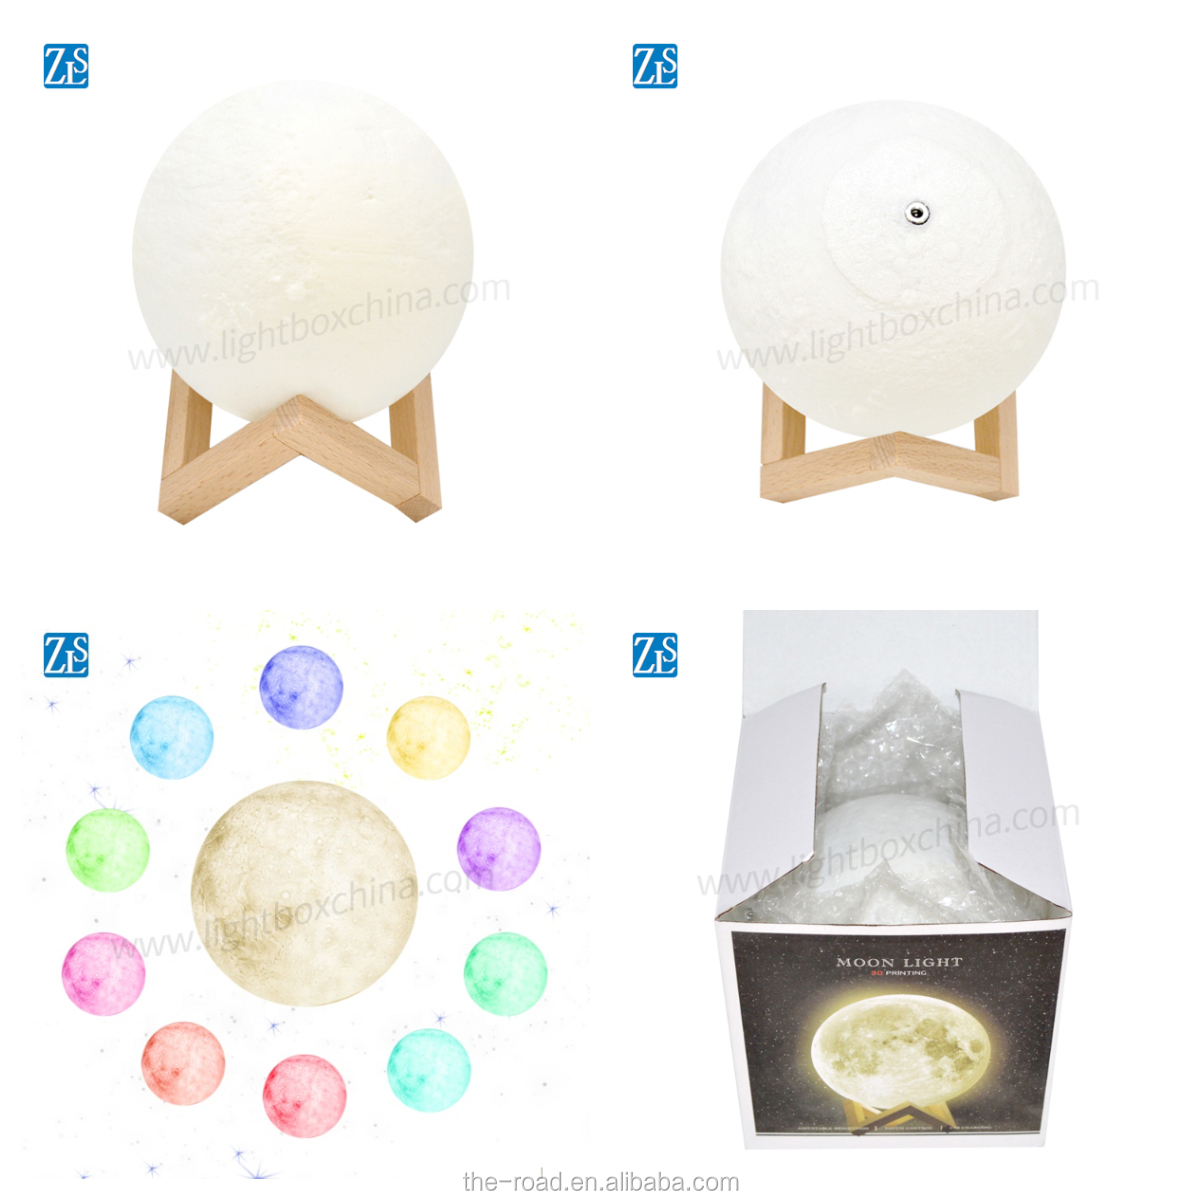 2019 Amazon Trending Product, 3D LED Moon Table Lamp Home Decor